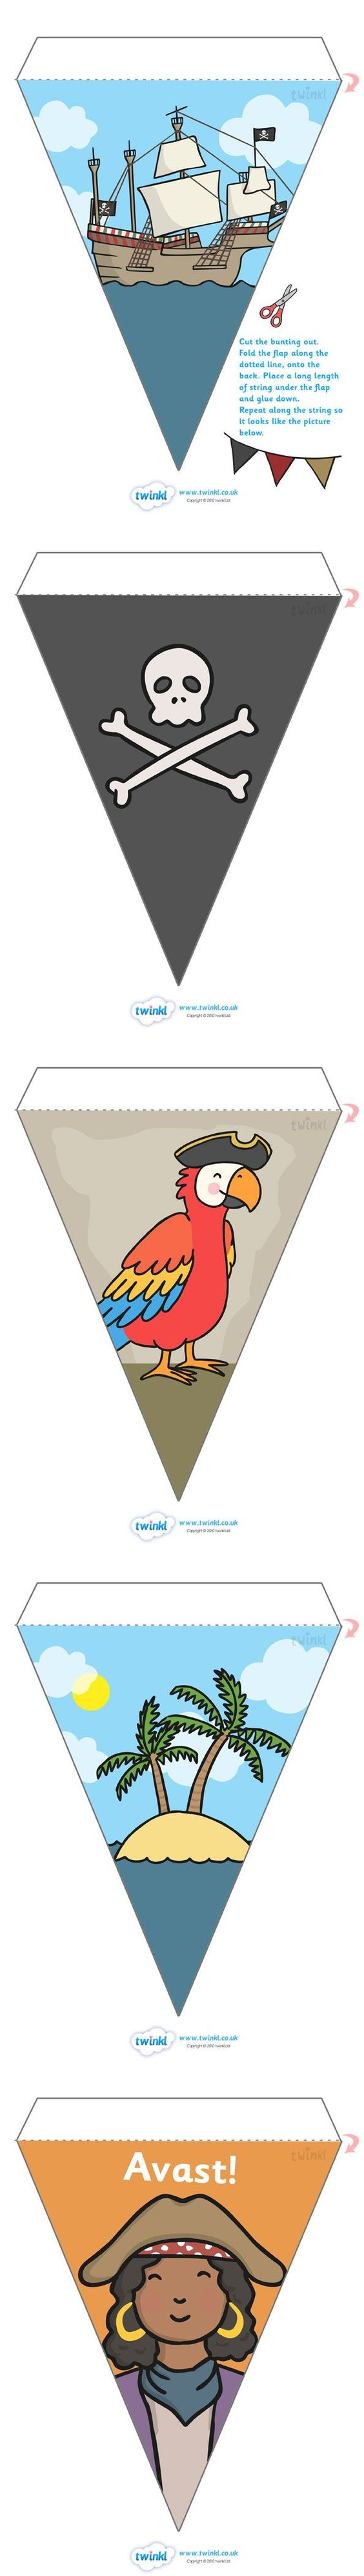 Vlaggen thema piraten  Pirate Display Bunting  >> Classroom printables for Pre-School, Kindergarten, Elementary School and beyond! Buntings, Display, Pirates, Classroom Decor